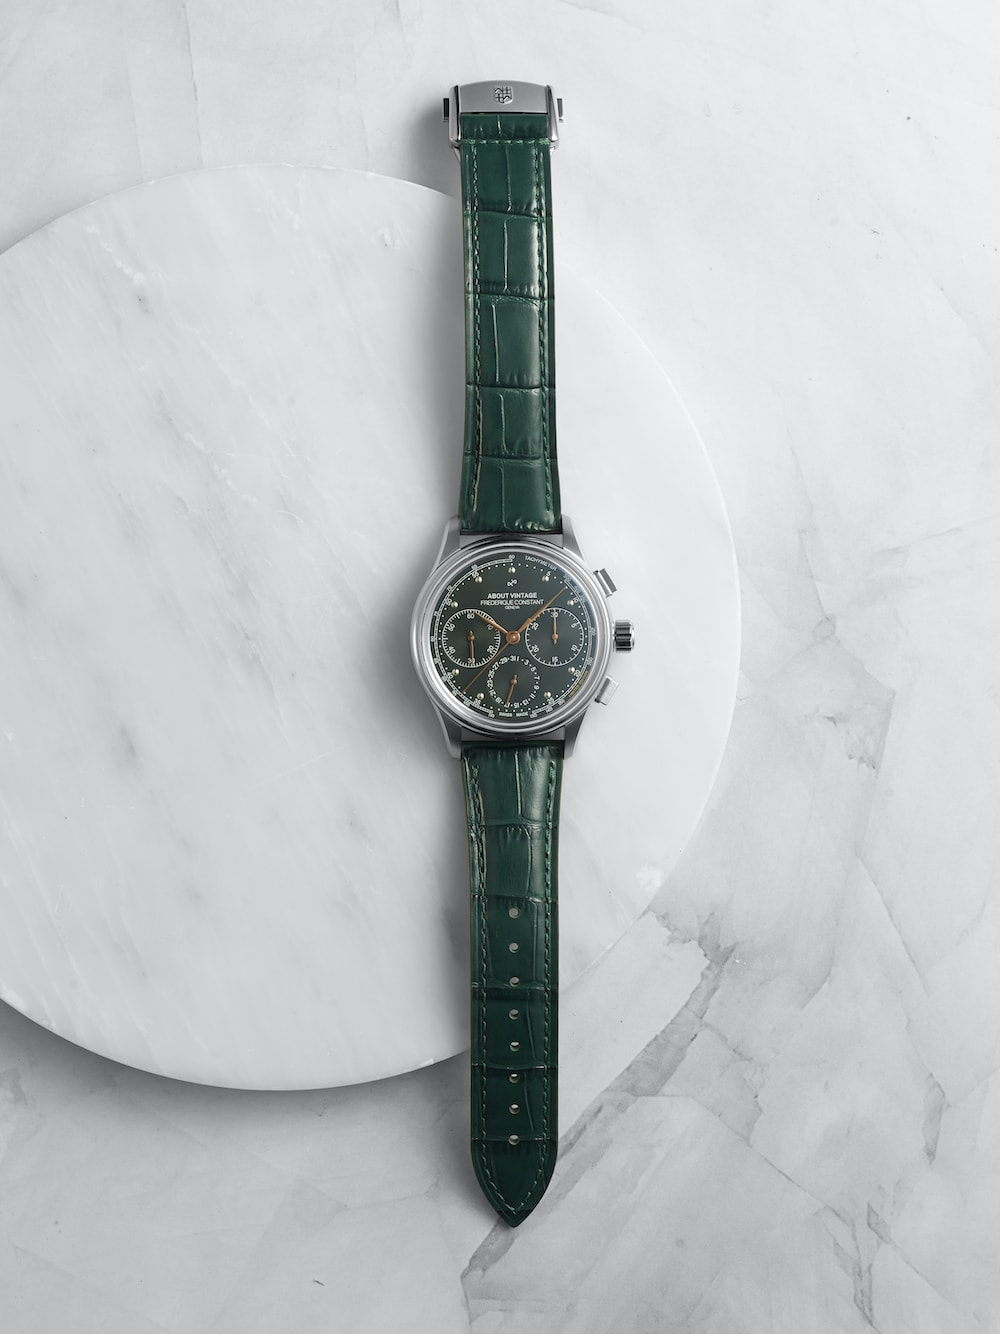 FC 1988 Flyback Chronograph About Vintage 1 min